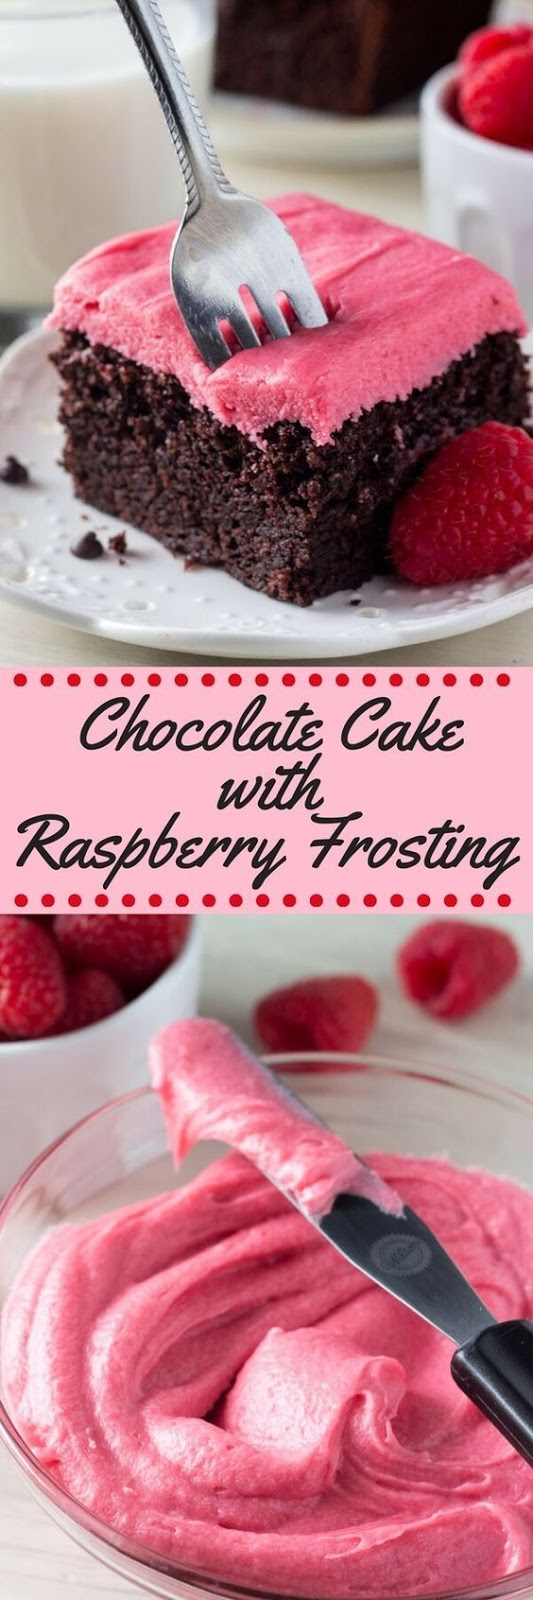 Fudgy Chocolate Cake with Raspberry Frosting Recipe